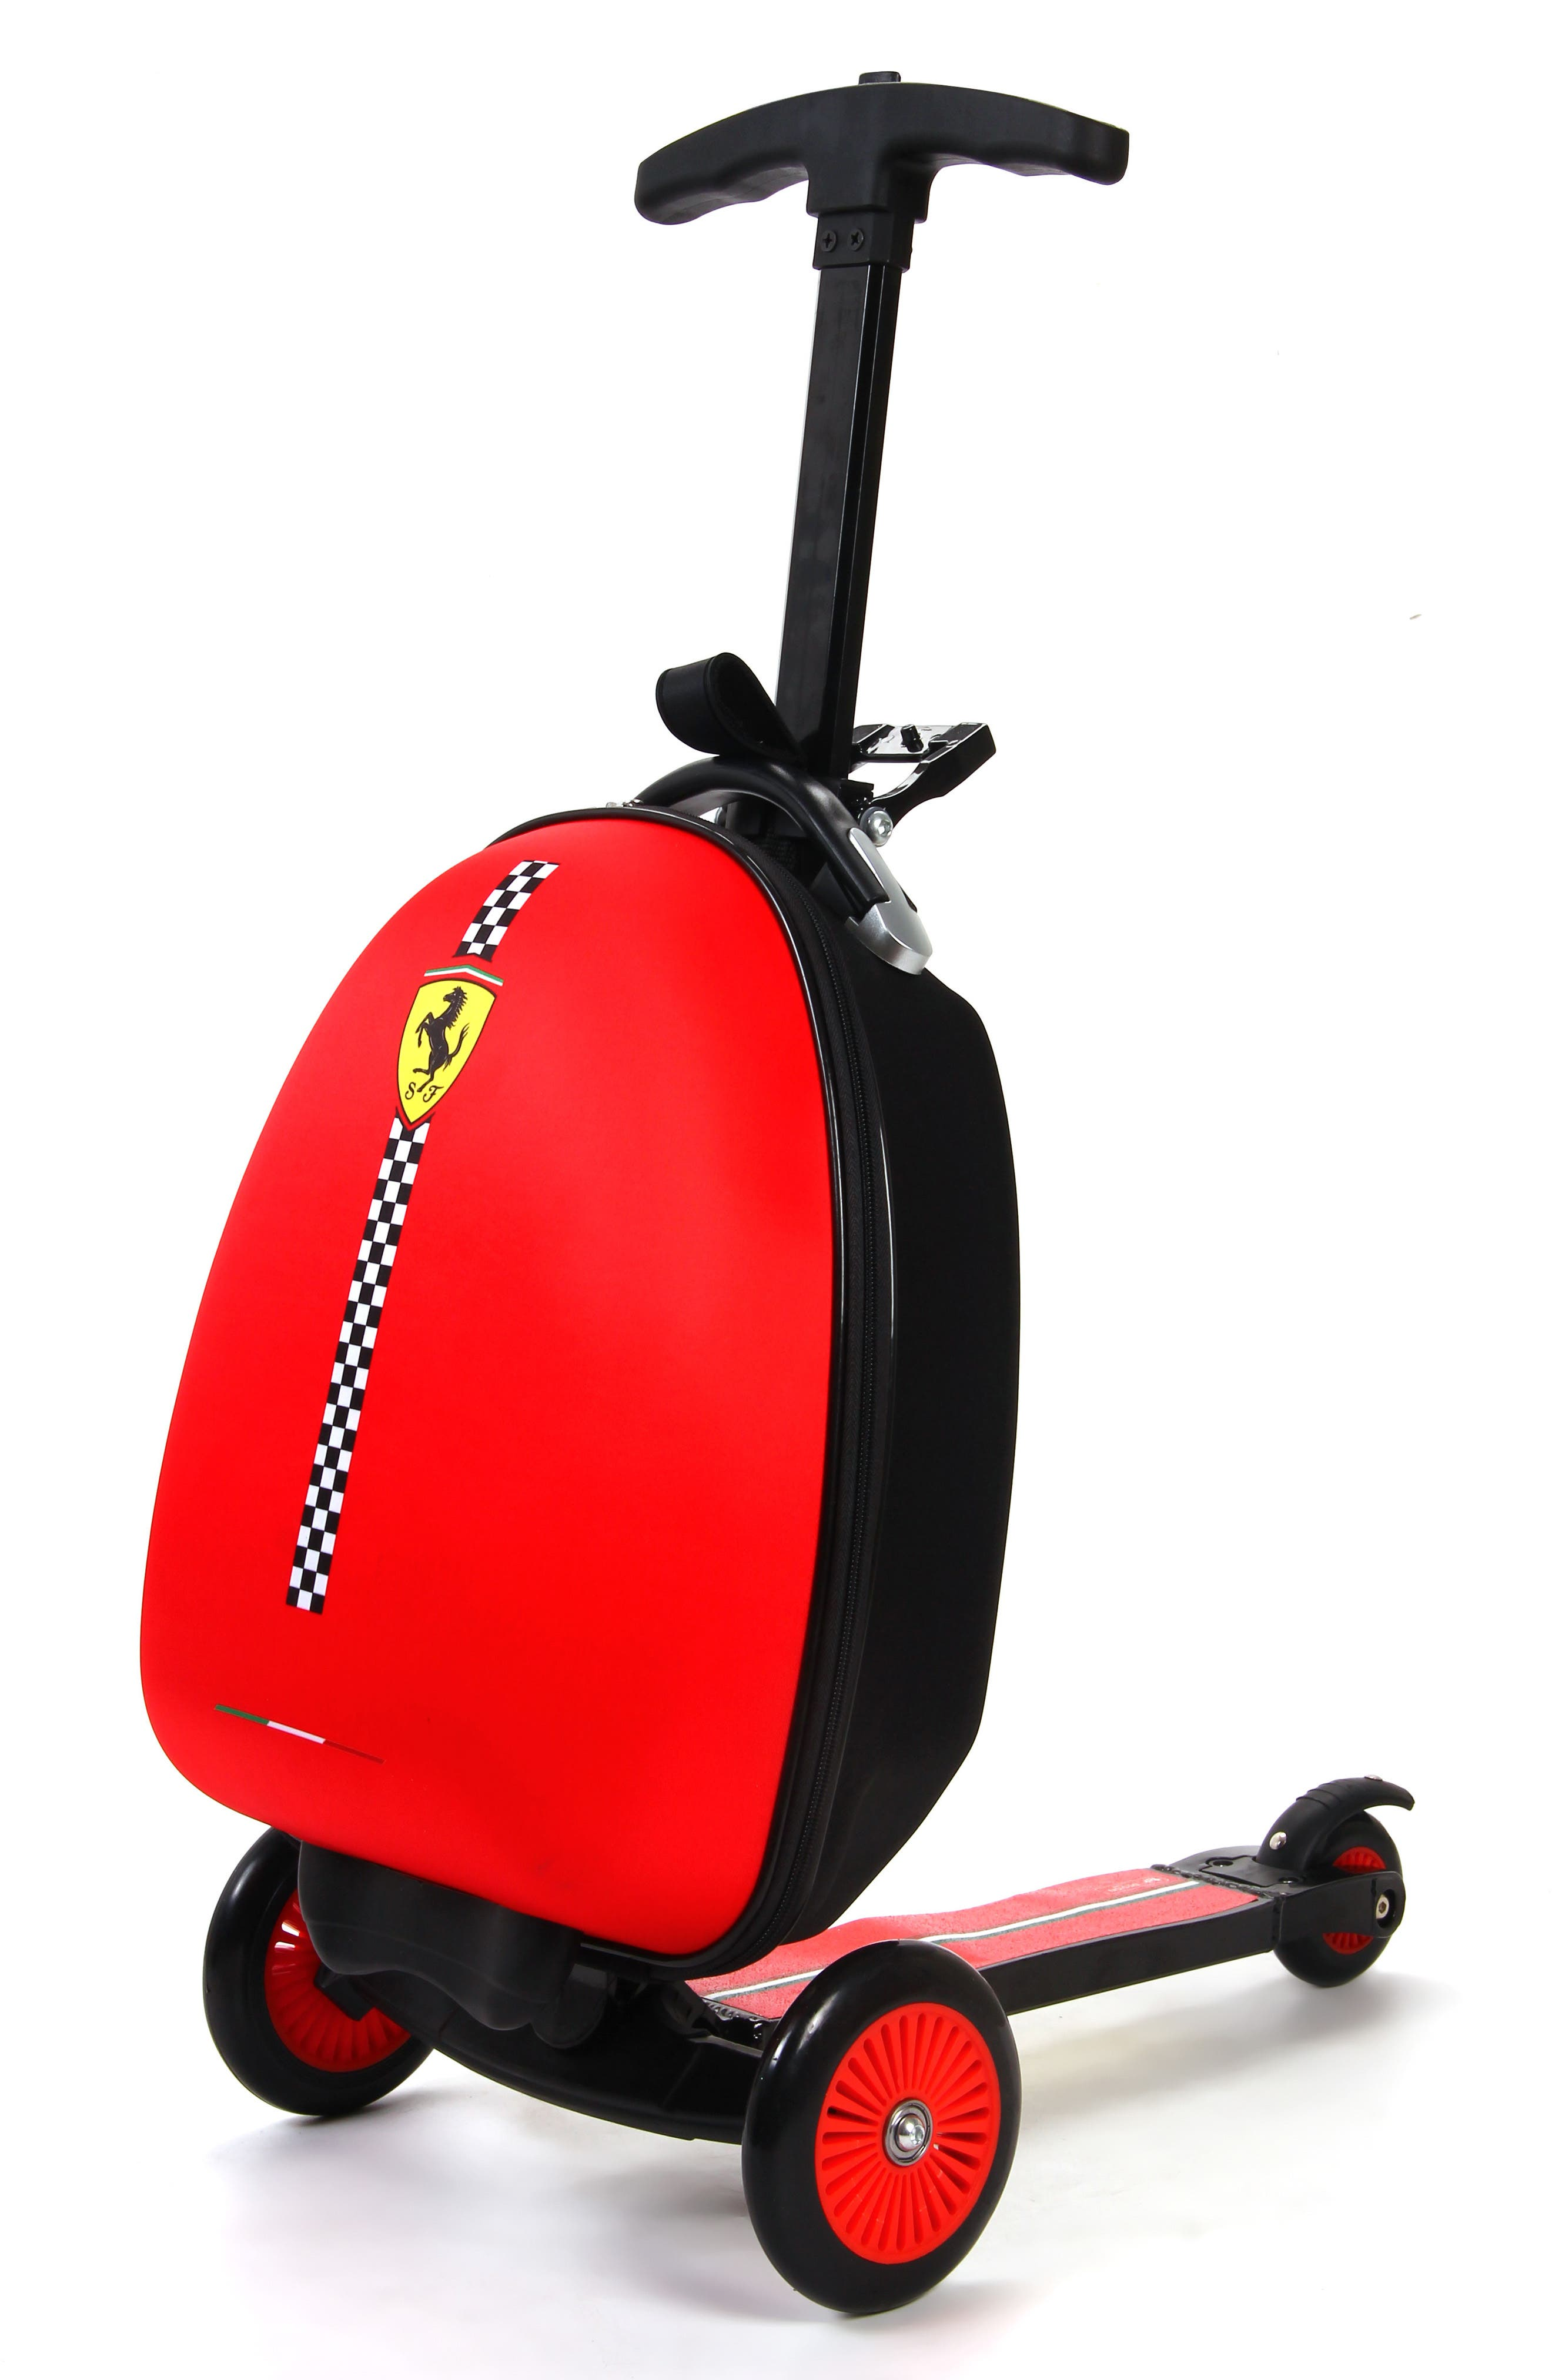 Scooter Trolley Case,                             Main thumbnail 1, color,                             Red